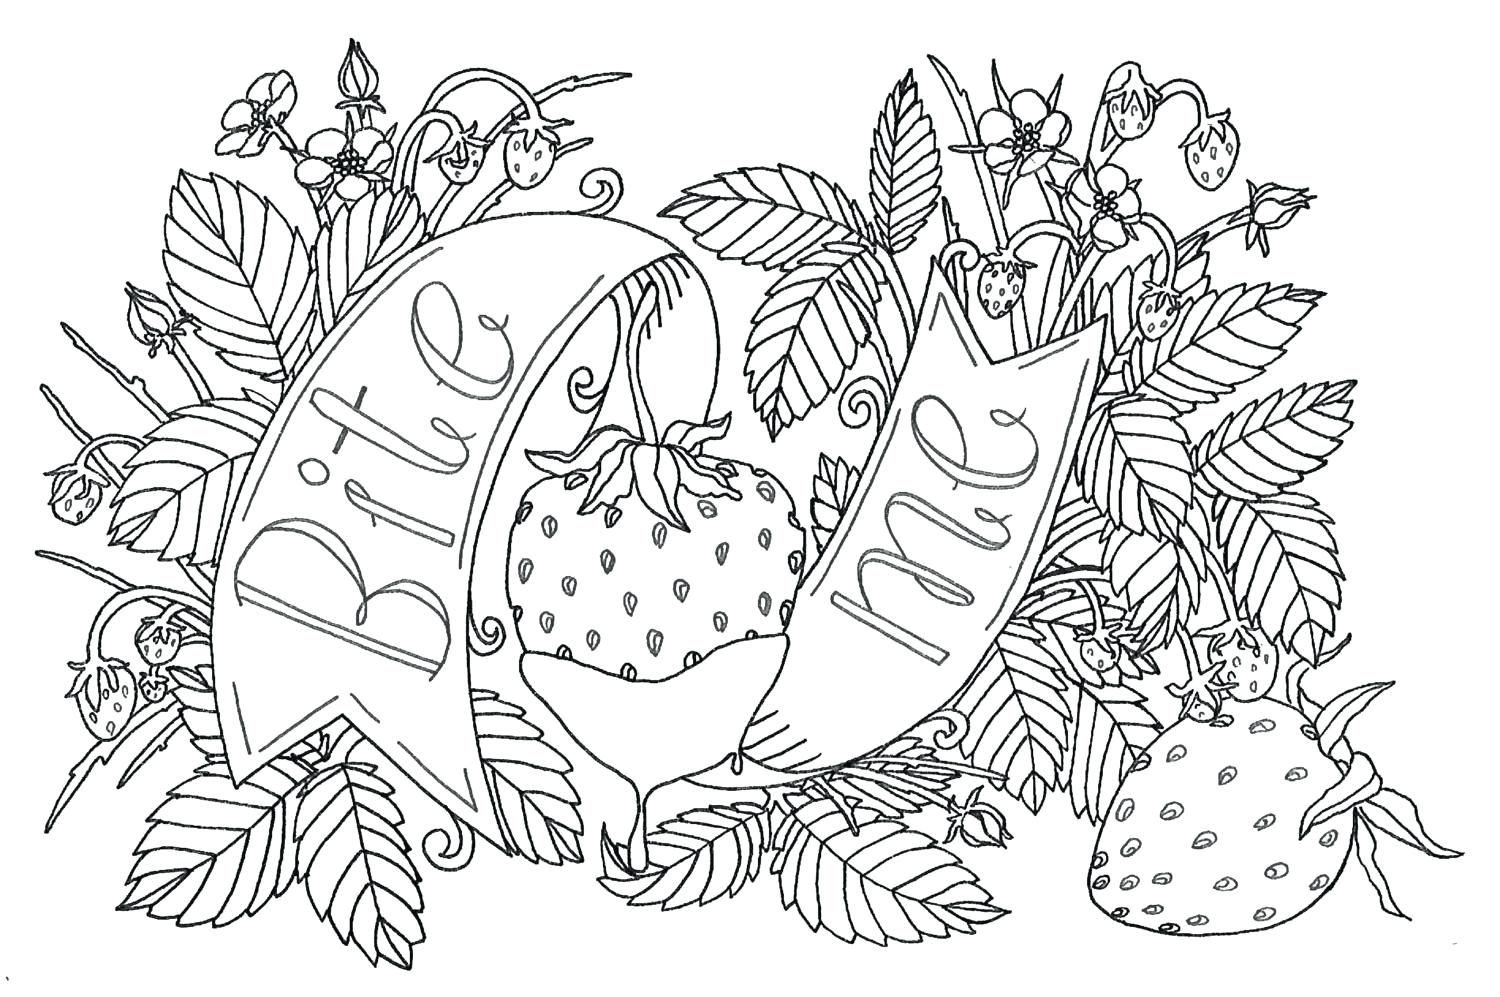 Funny Adult Coloring Pages Free Printable For With | Free ... | free online coloring pages for adults funny